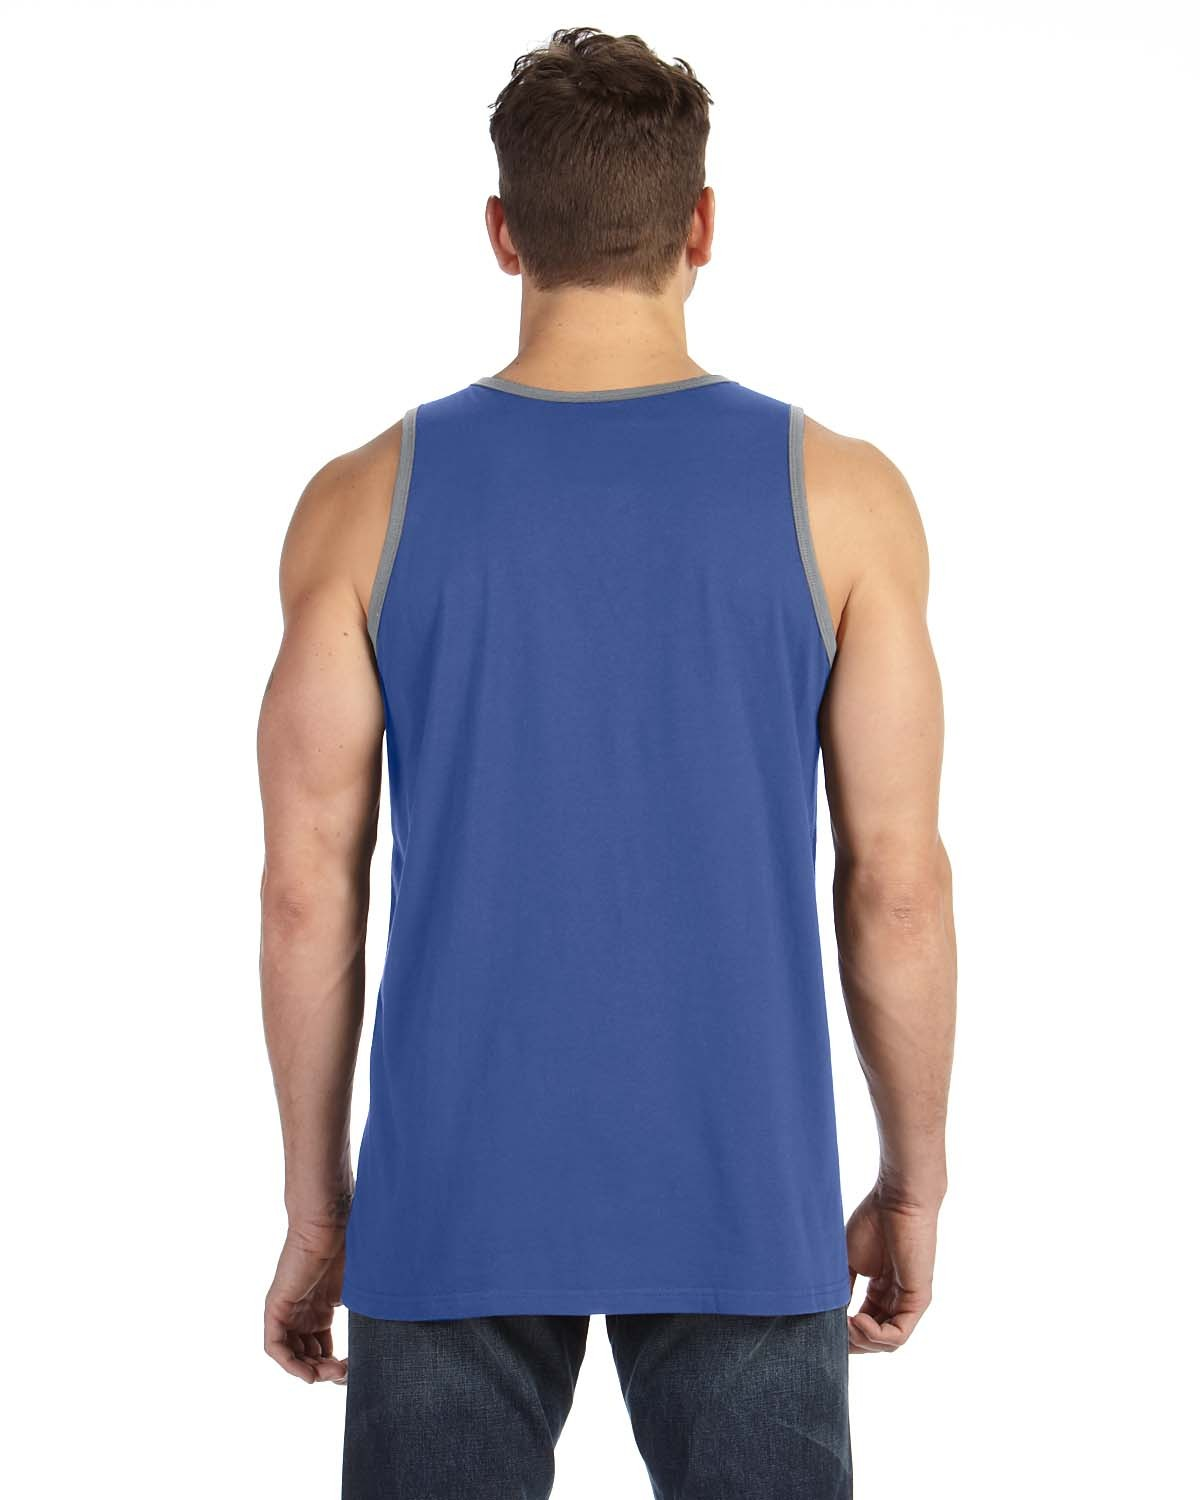 986 Anvil HTH BLUE/HT GRY